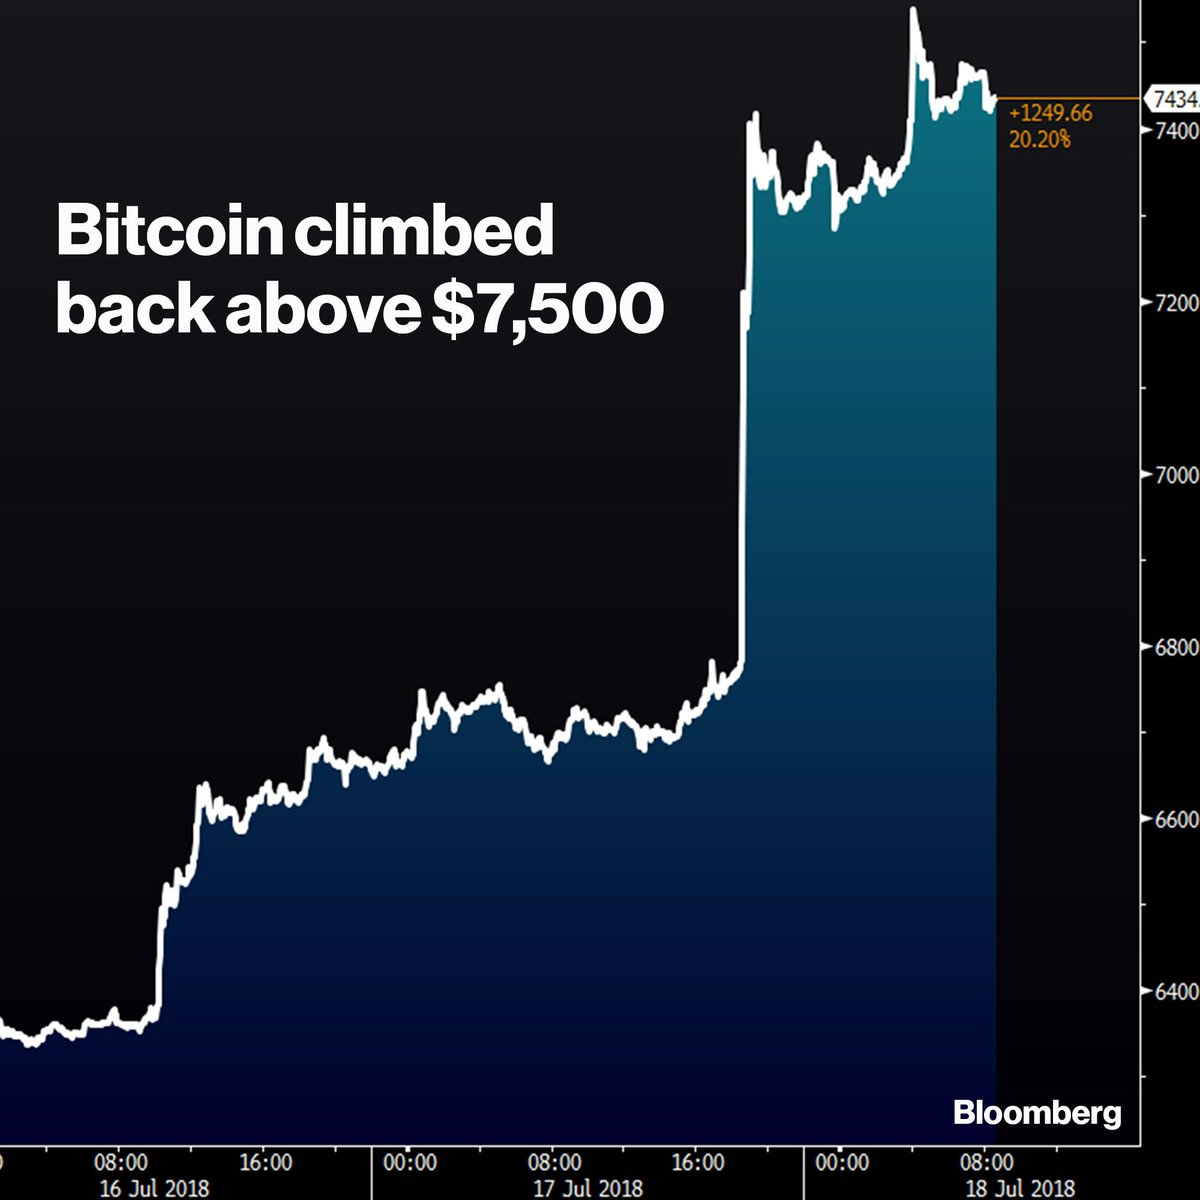 Bitcoin broke above $7,500 for the first time since June https://t.co/FoyXDZzI71